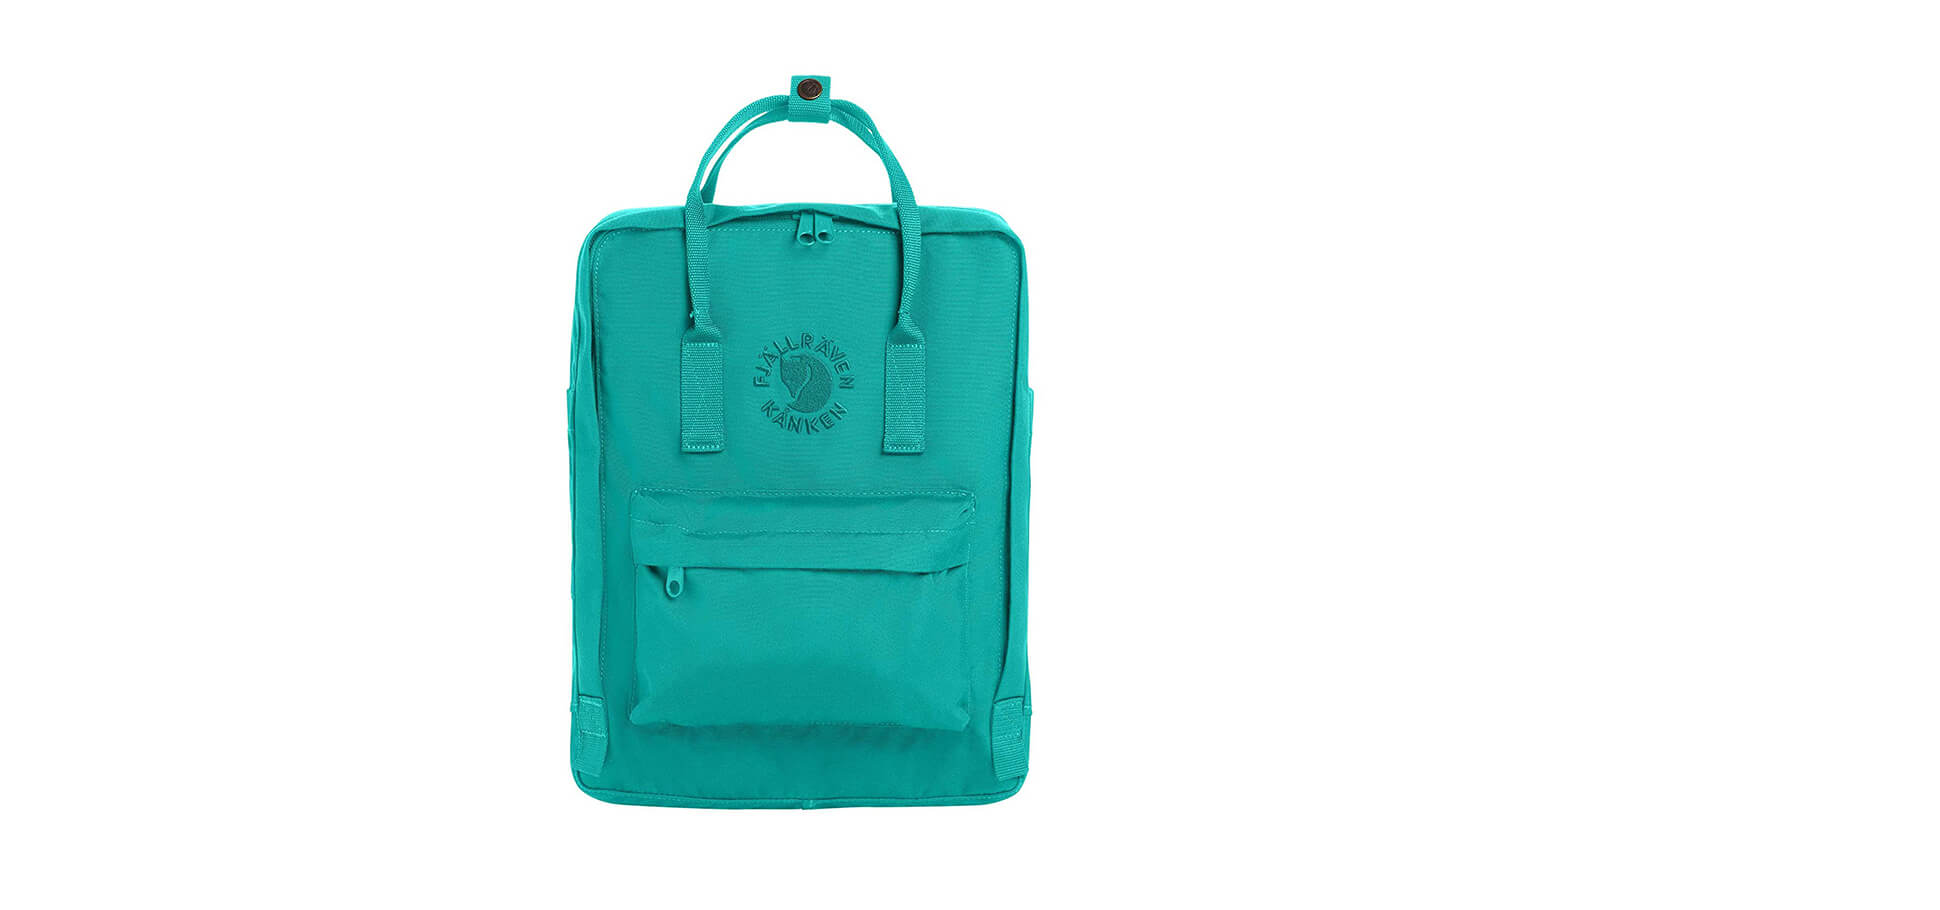 The Eco-Friendly Backpack, by Fjällräven travel product recommended by Rania Jeoual on Lifney.